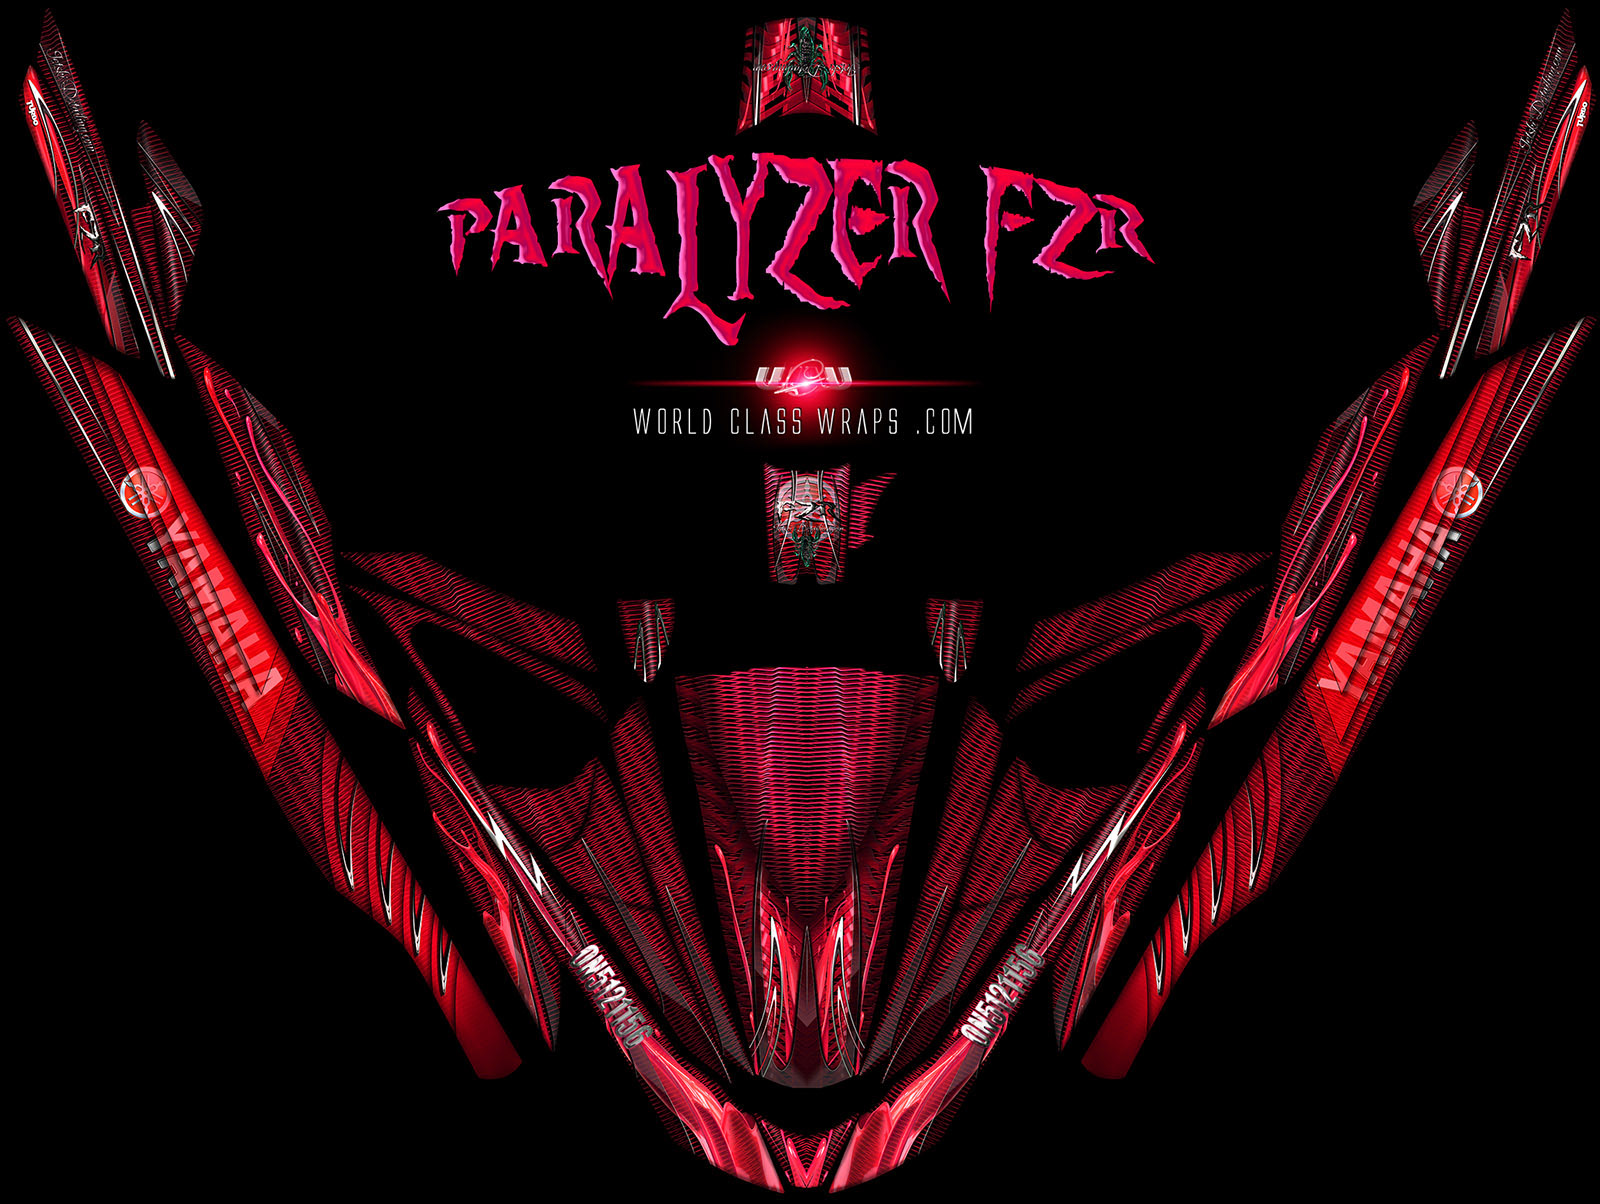 yamaha FZR red Paralyzer jet ski graphics wrap